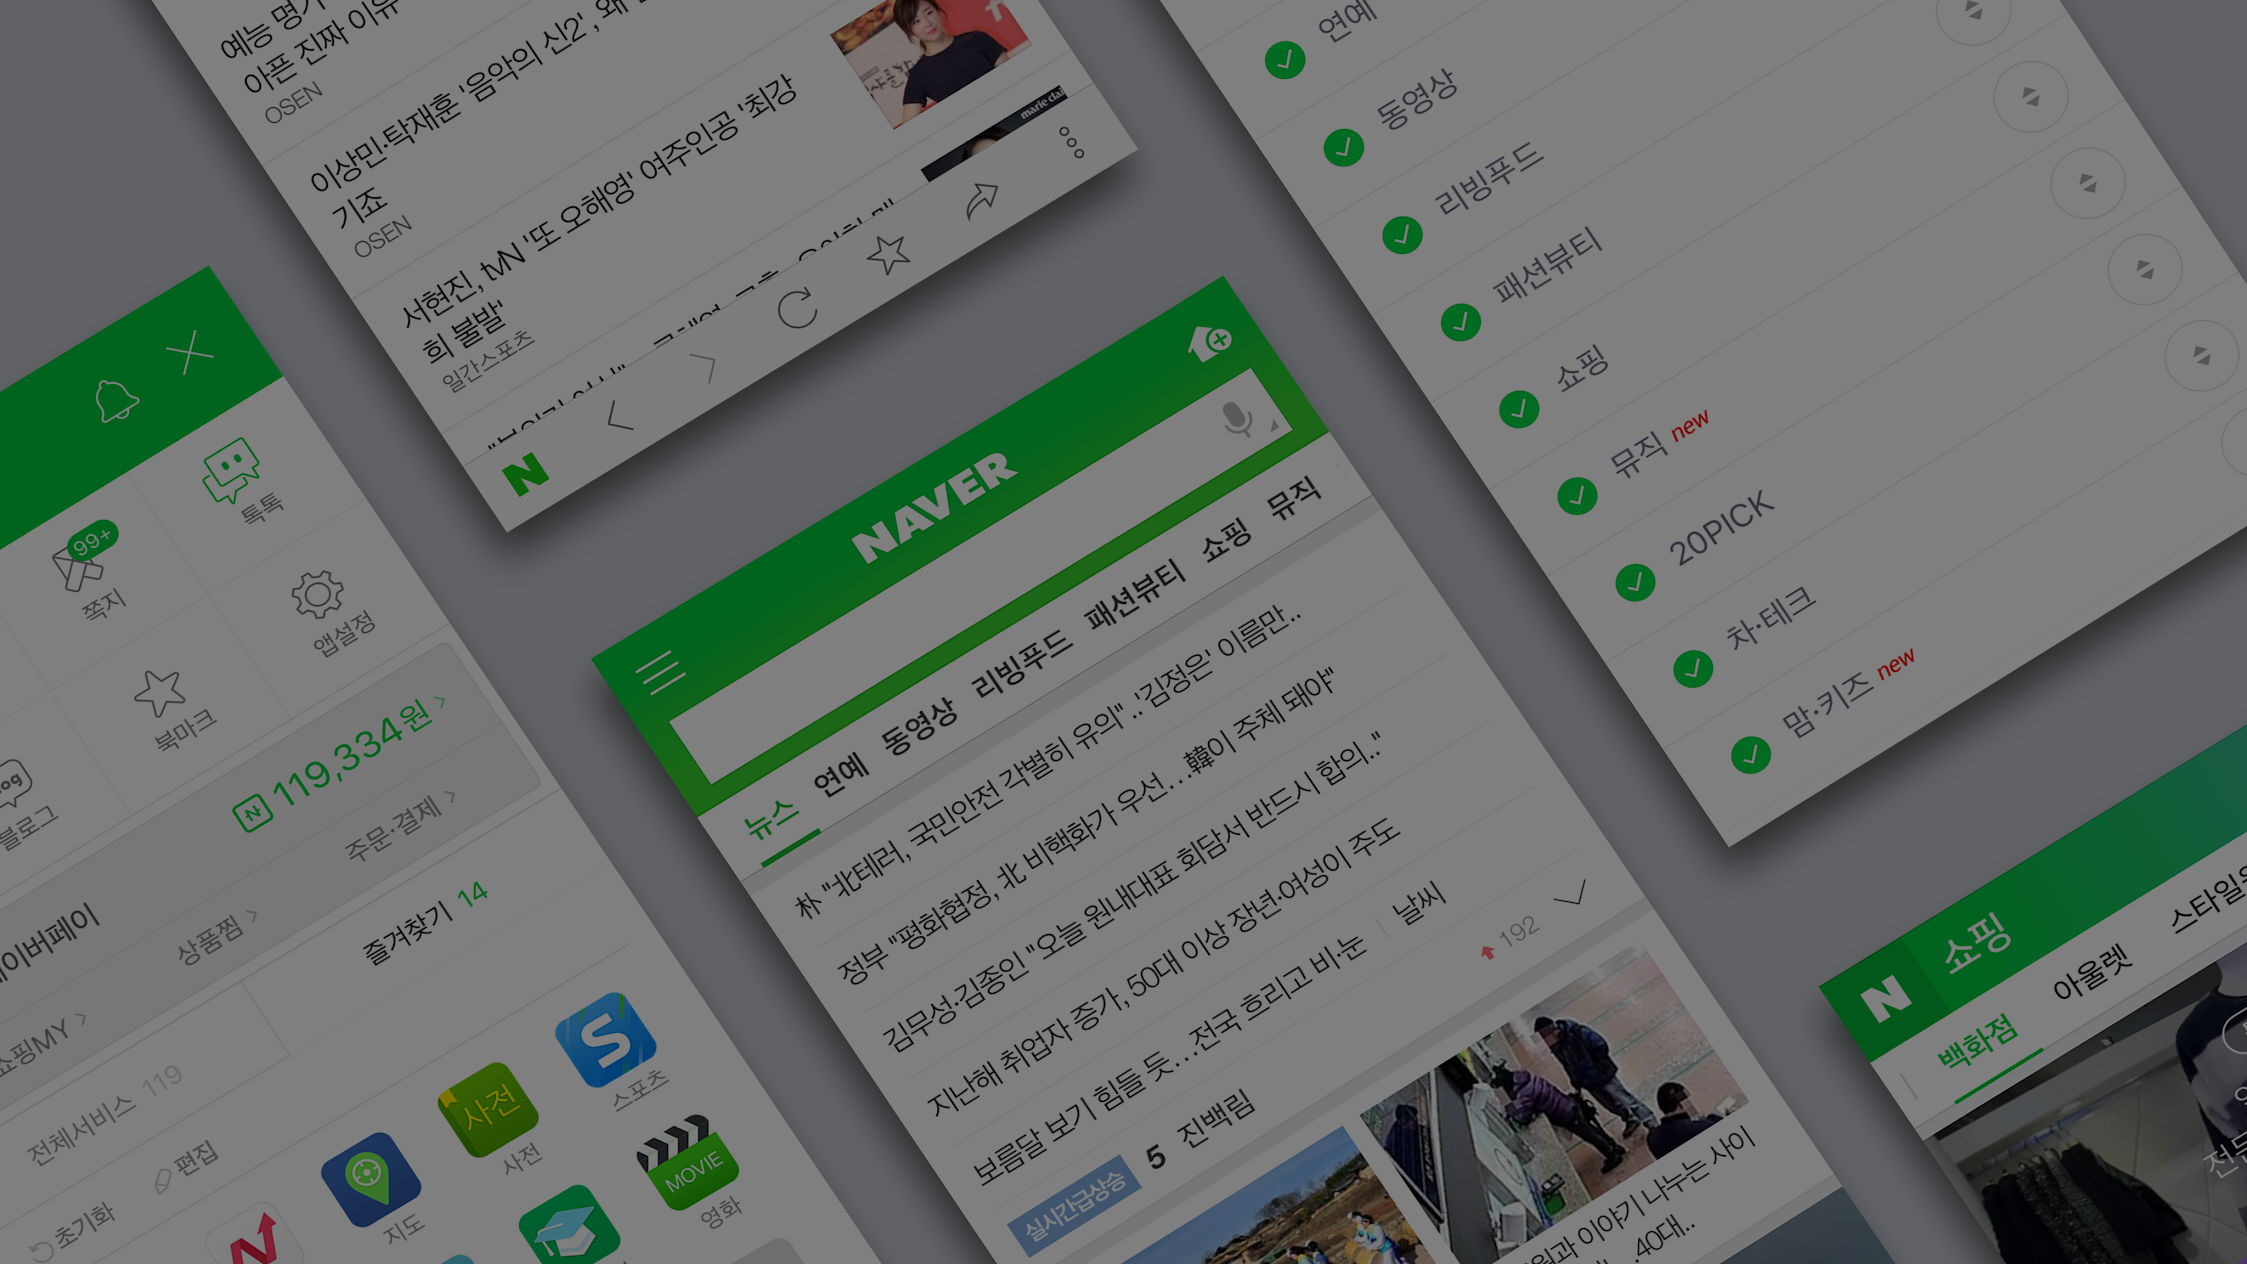 android apps by naver corp on google play